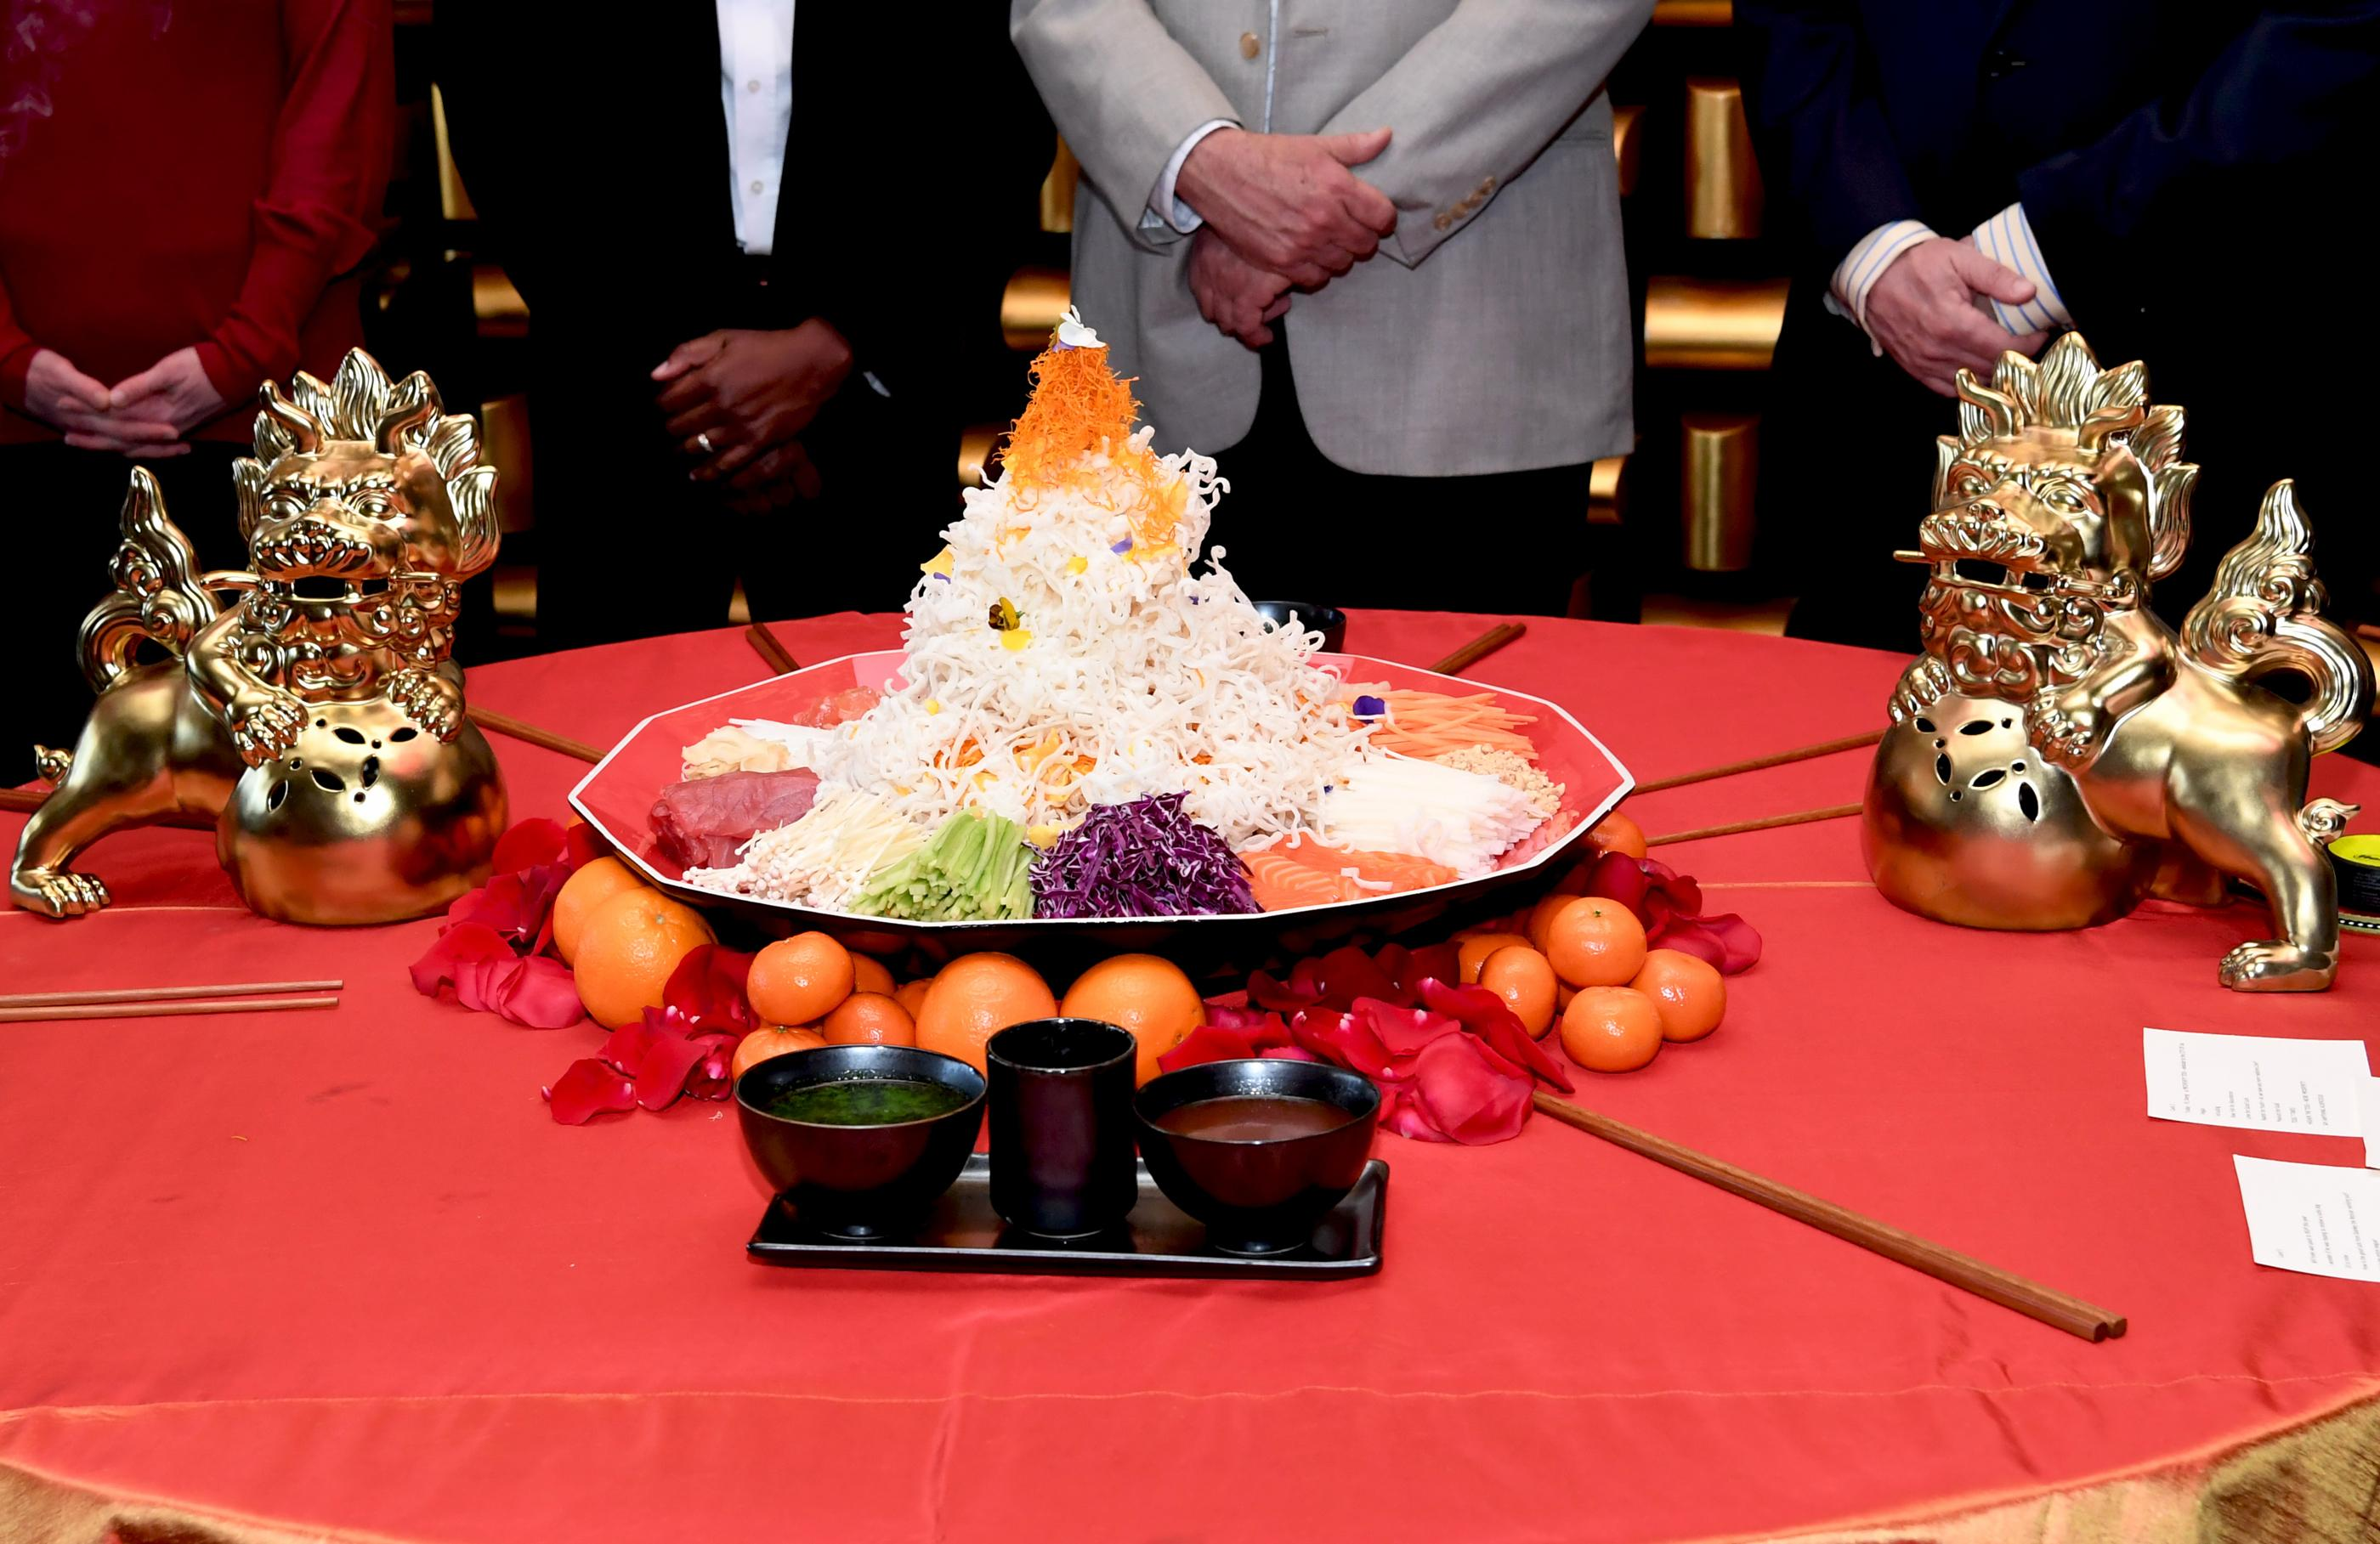 The Mandarin Oriental, Las Vegas celebrates the Chinese New Year, Year of the Dog with a special Yusheng Toss presentation. Thursday, February 15, 2018. CREDIT: Glenn Pinkerton/Las Vegas News Bureau